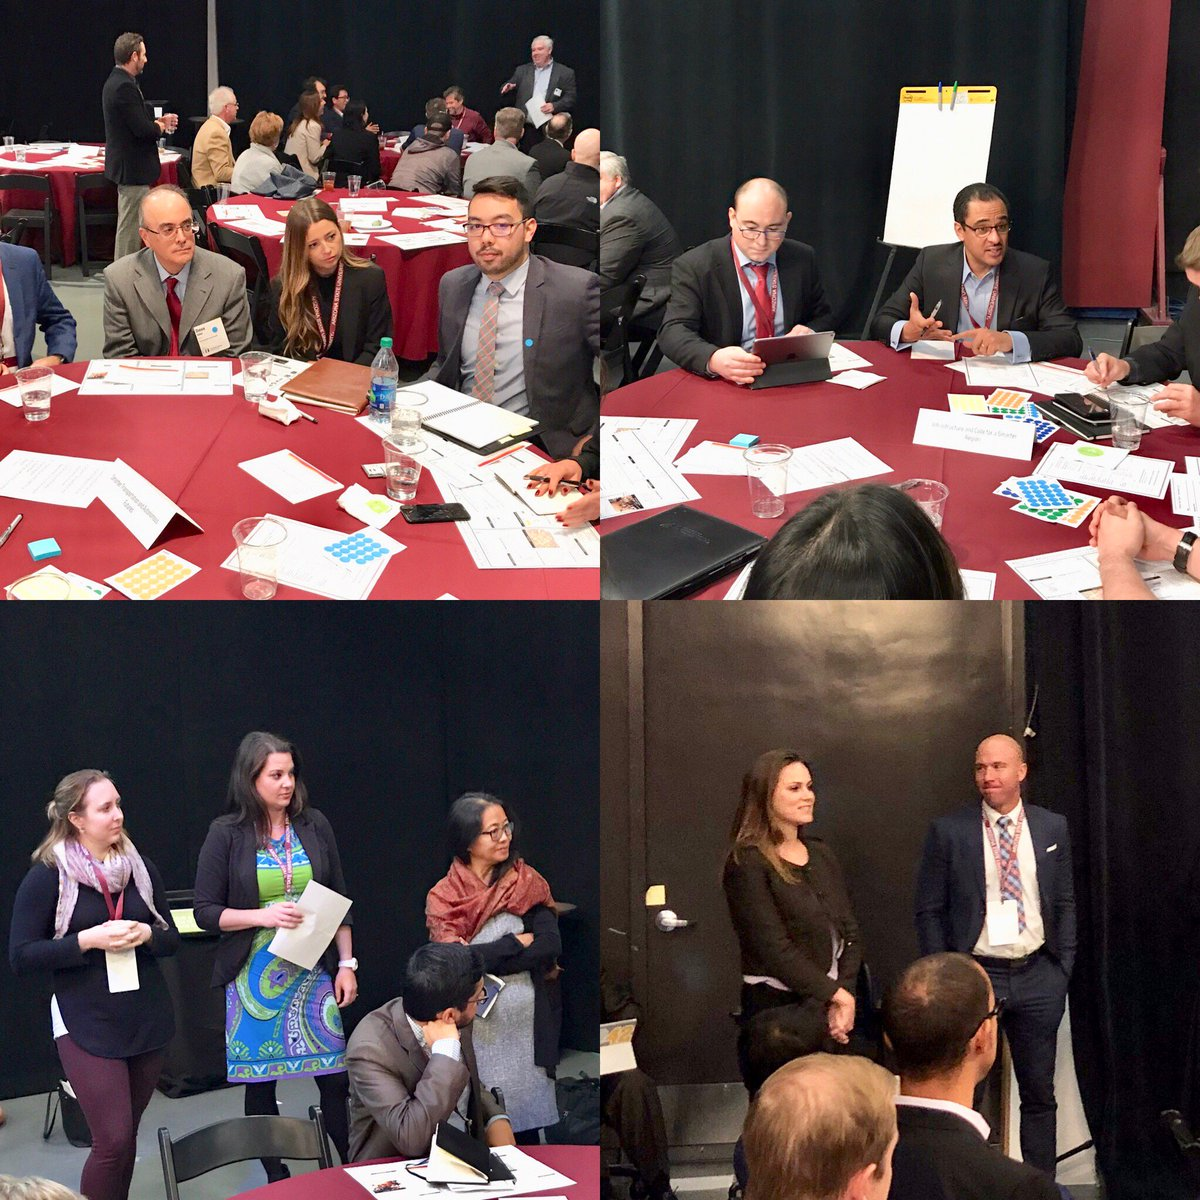 From finance and governance of smarter regional initiatives, to smarter transportation and autonomous futures, GPEC staff takes the lead in the important roundtable topics at the #ASUSmartRegion18. https://t.co/6830aEi86S